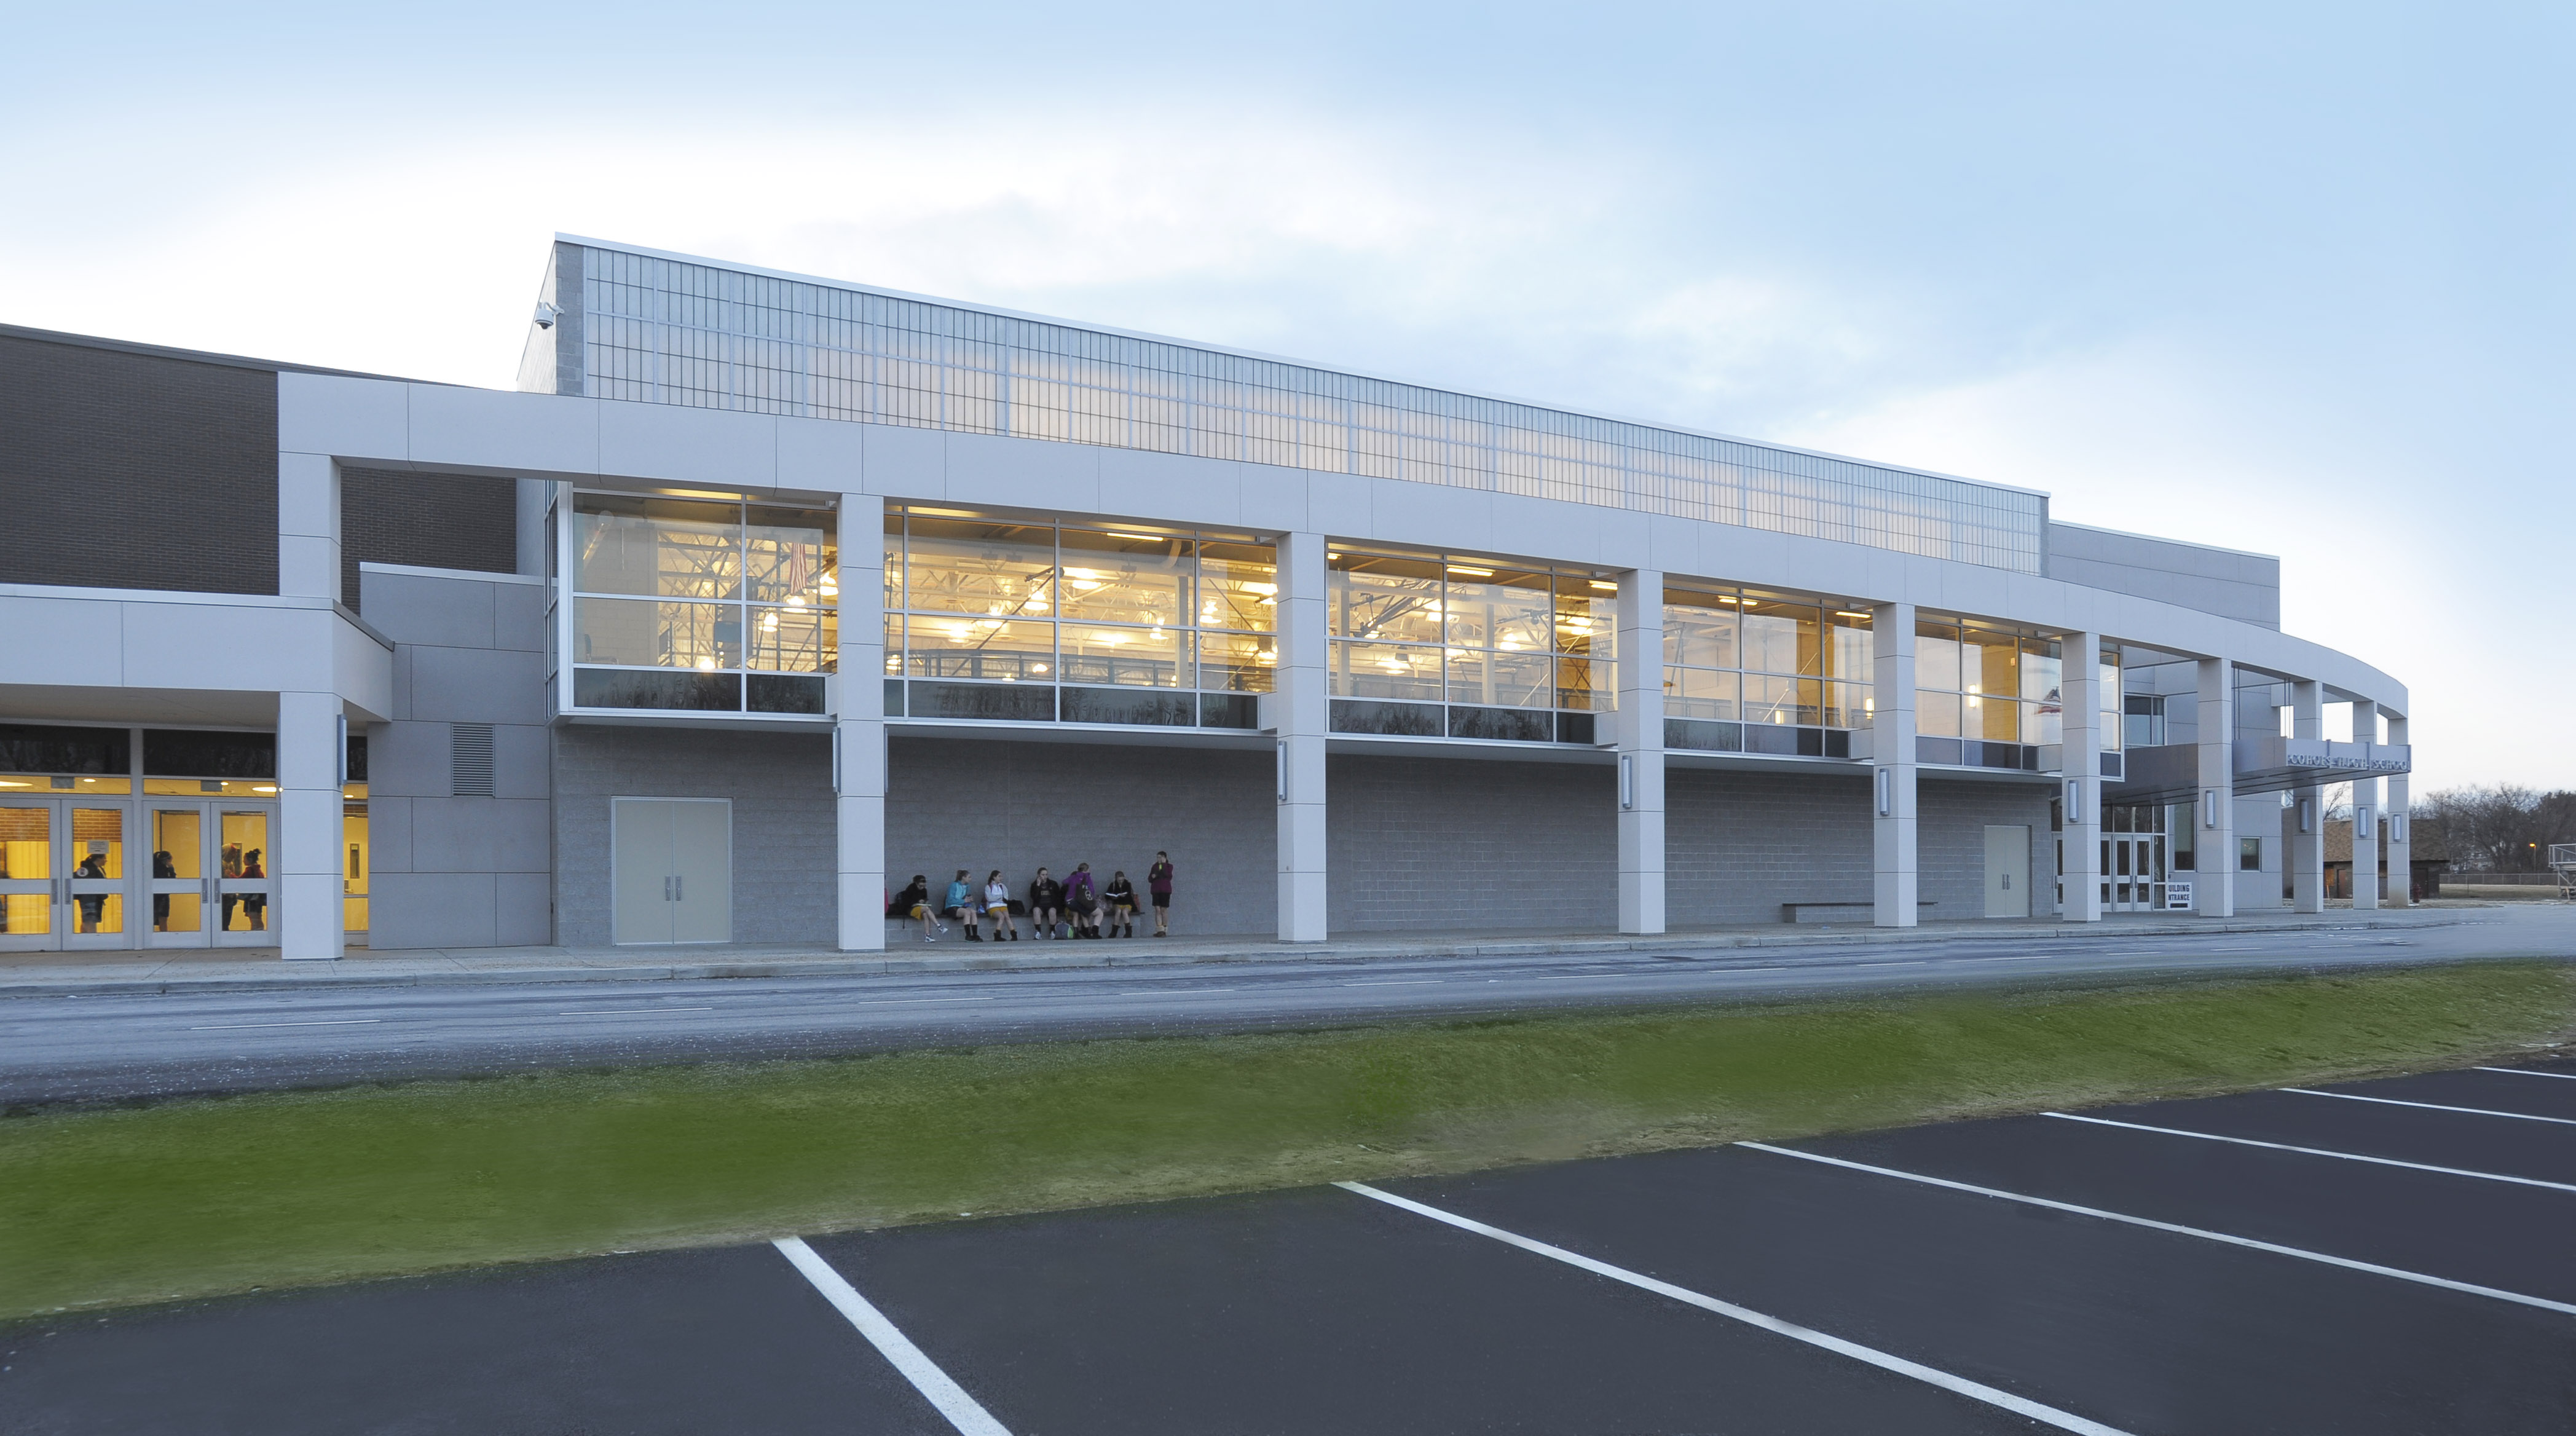 additions and renovations to cohoes high school